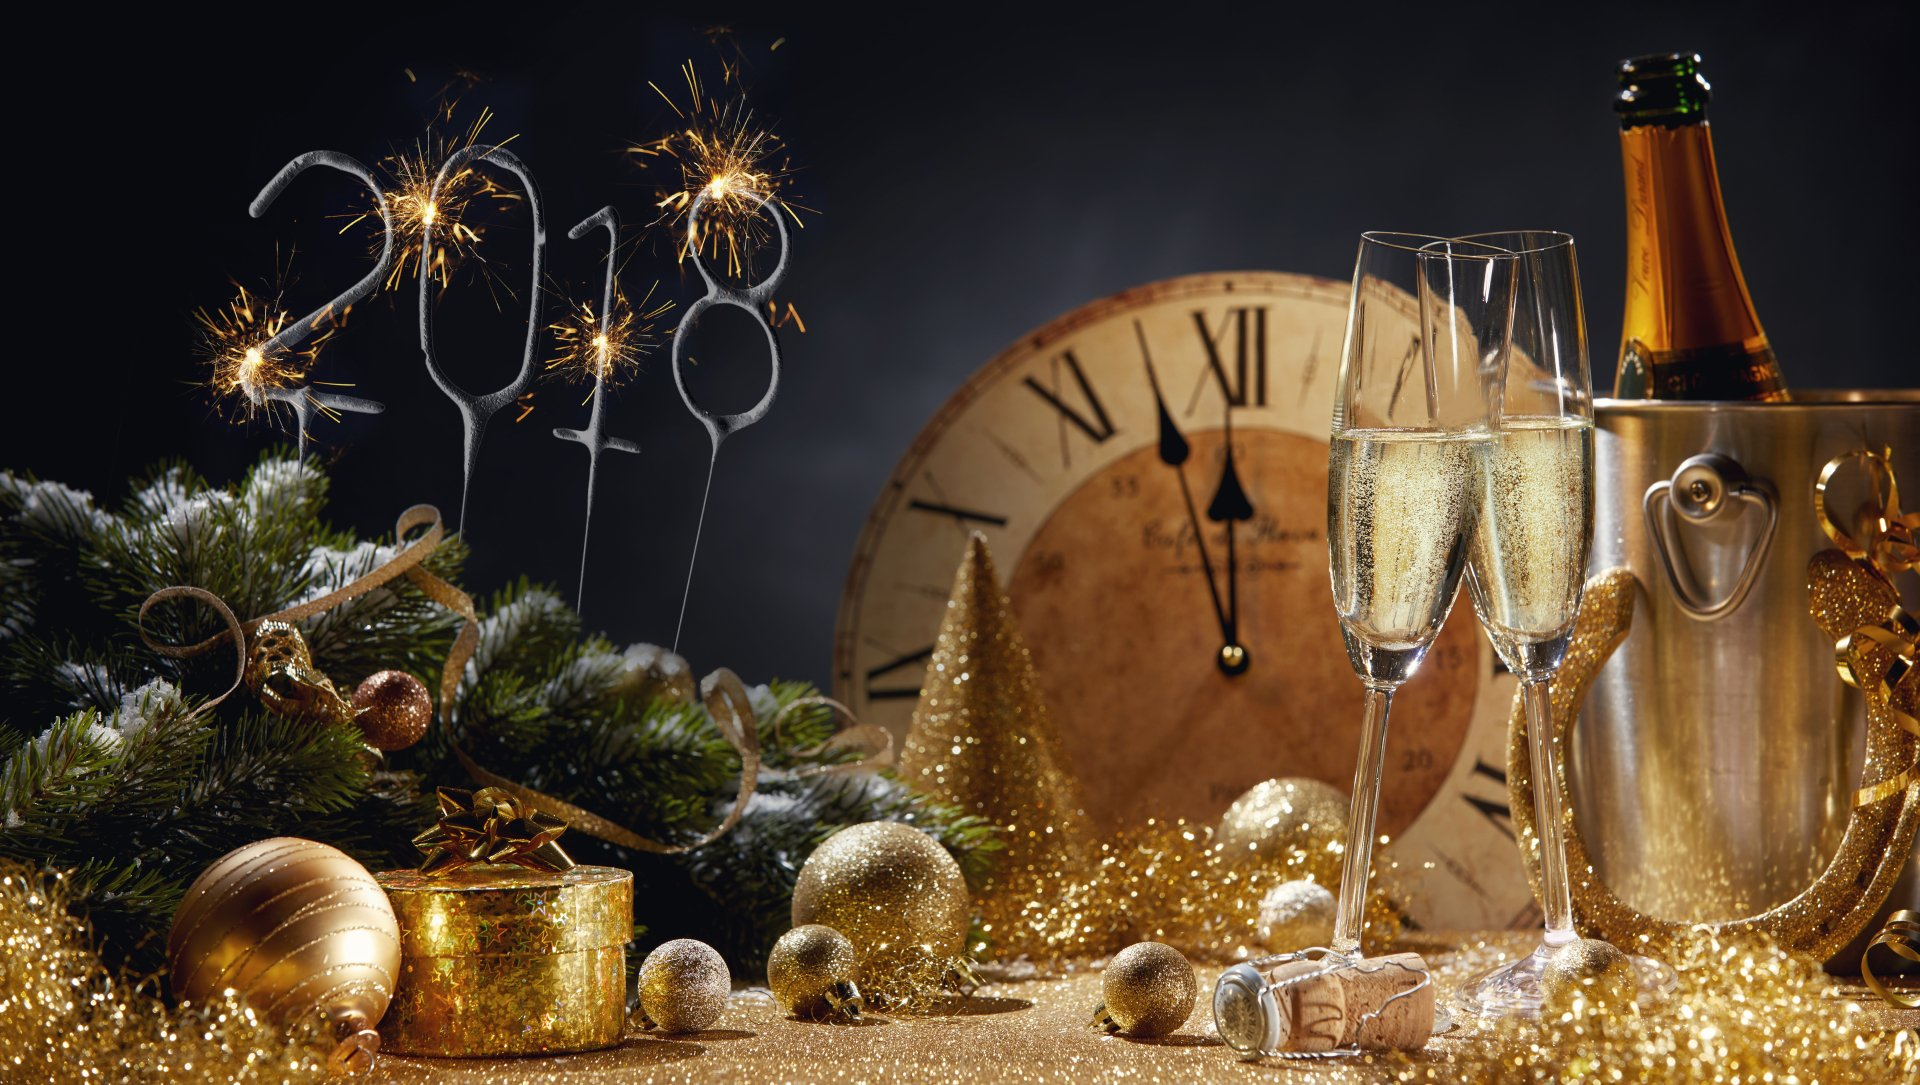 Holiday - New Year 2018  Champagne Alcohol Celebration Drink New Year Golden Wallpaper